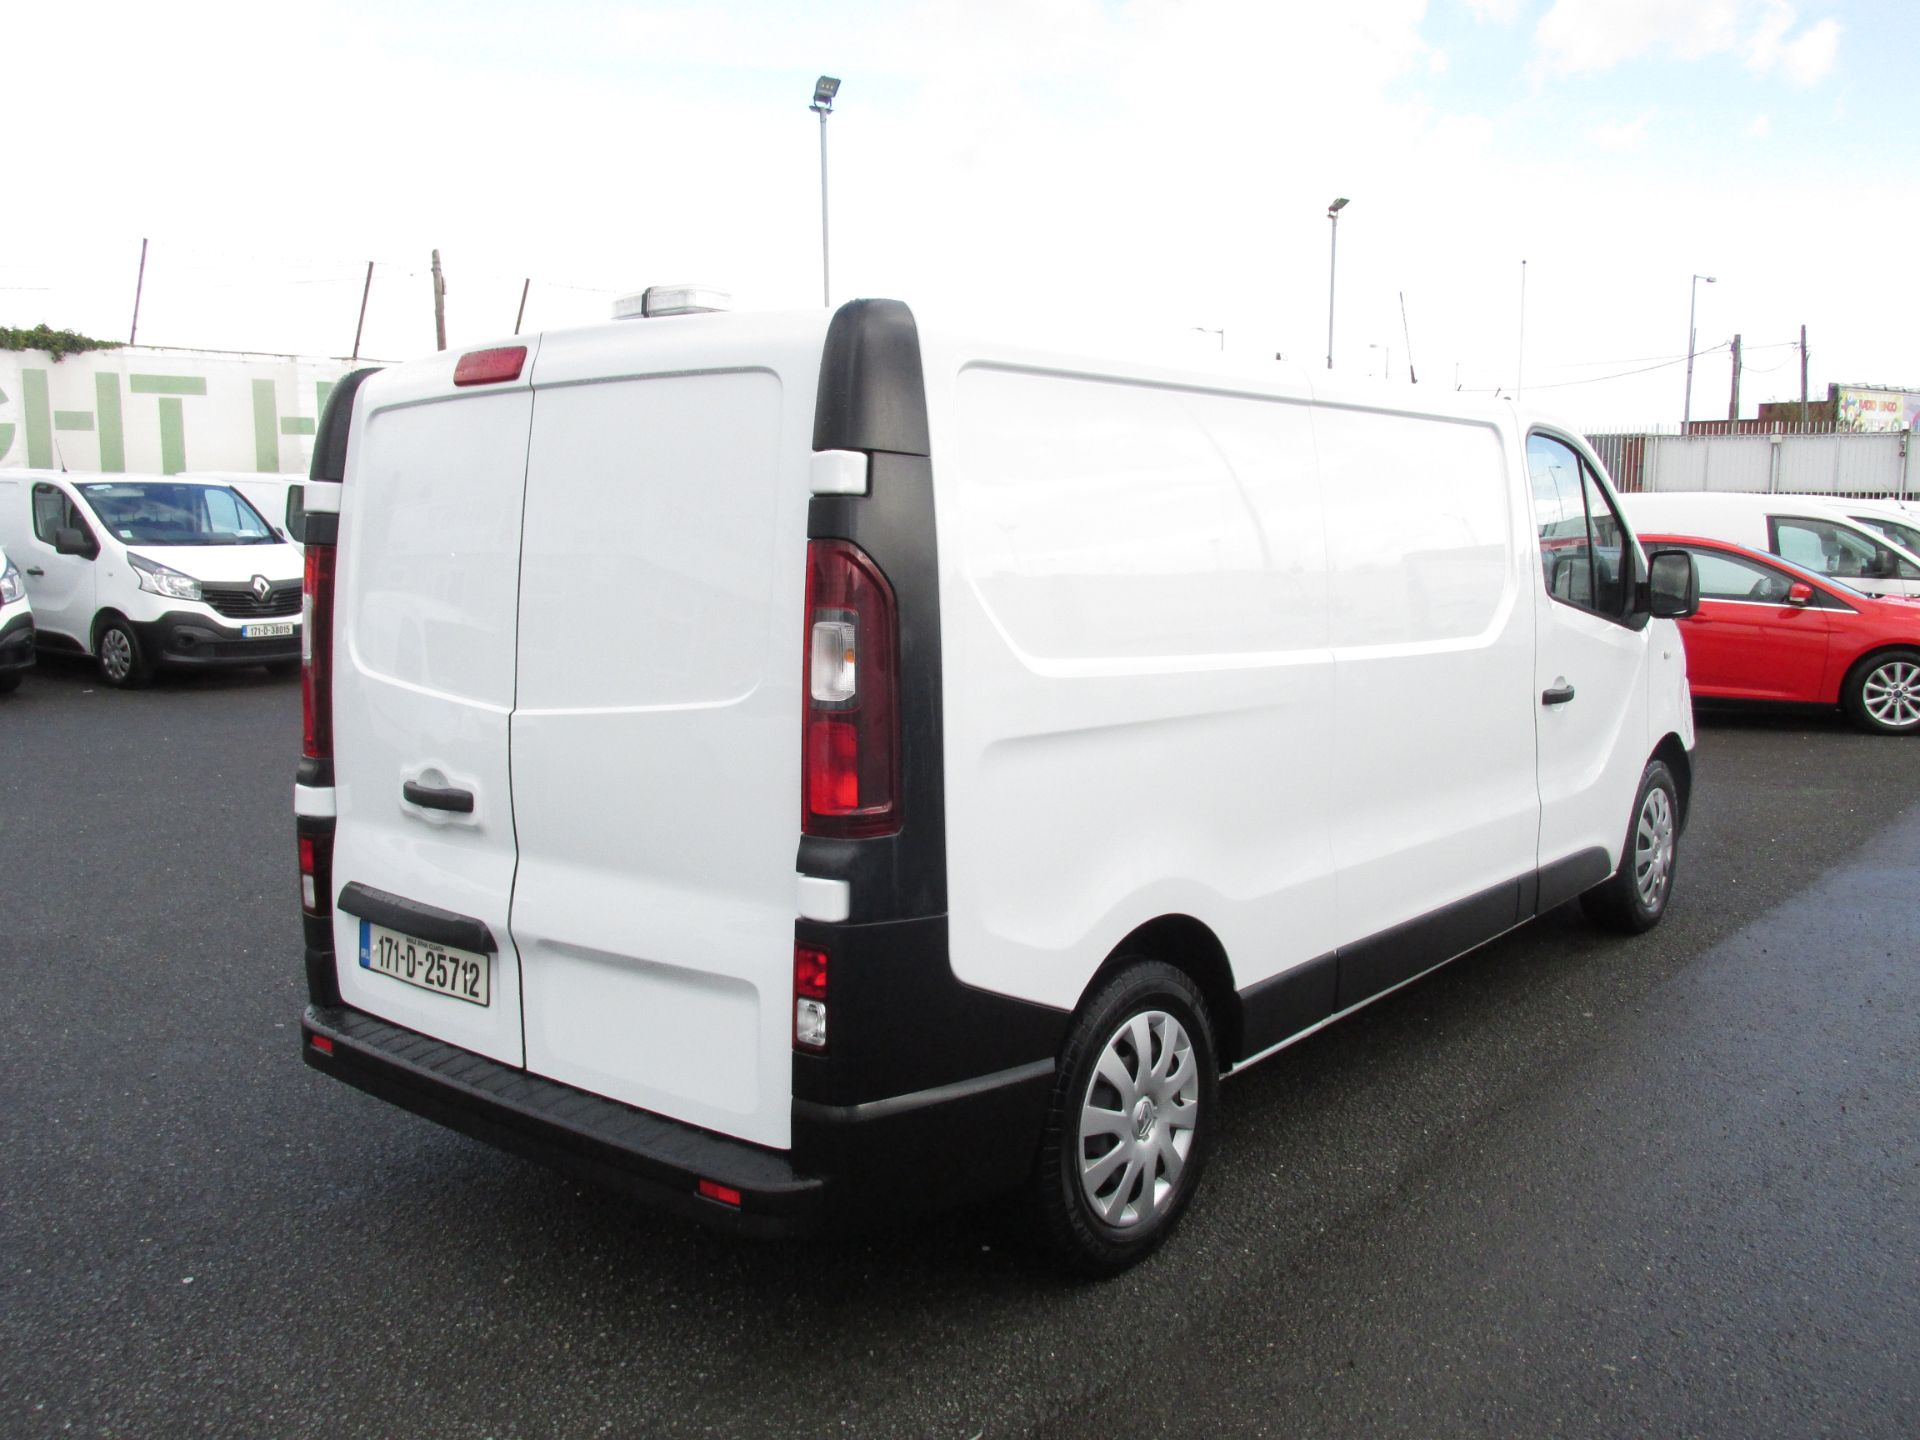 2017 Renault Trafic LL29 DCI 120 Business 3DR (171D25712) Image 7